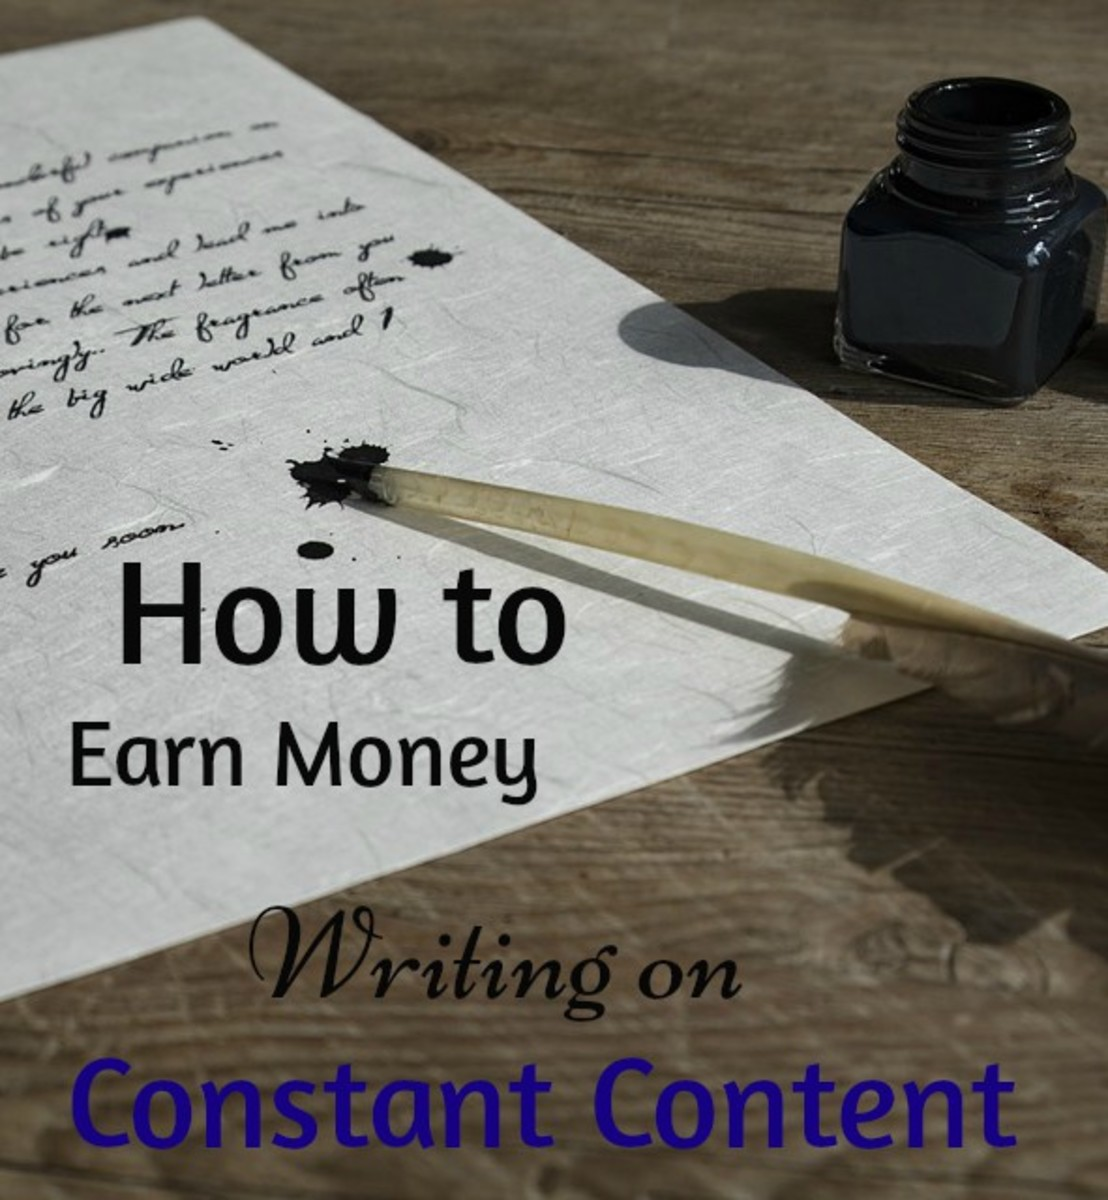 Constant Content Review: A Writer's Perspective